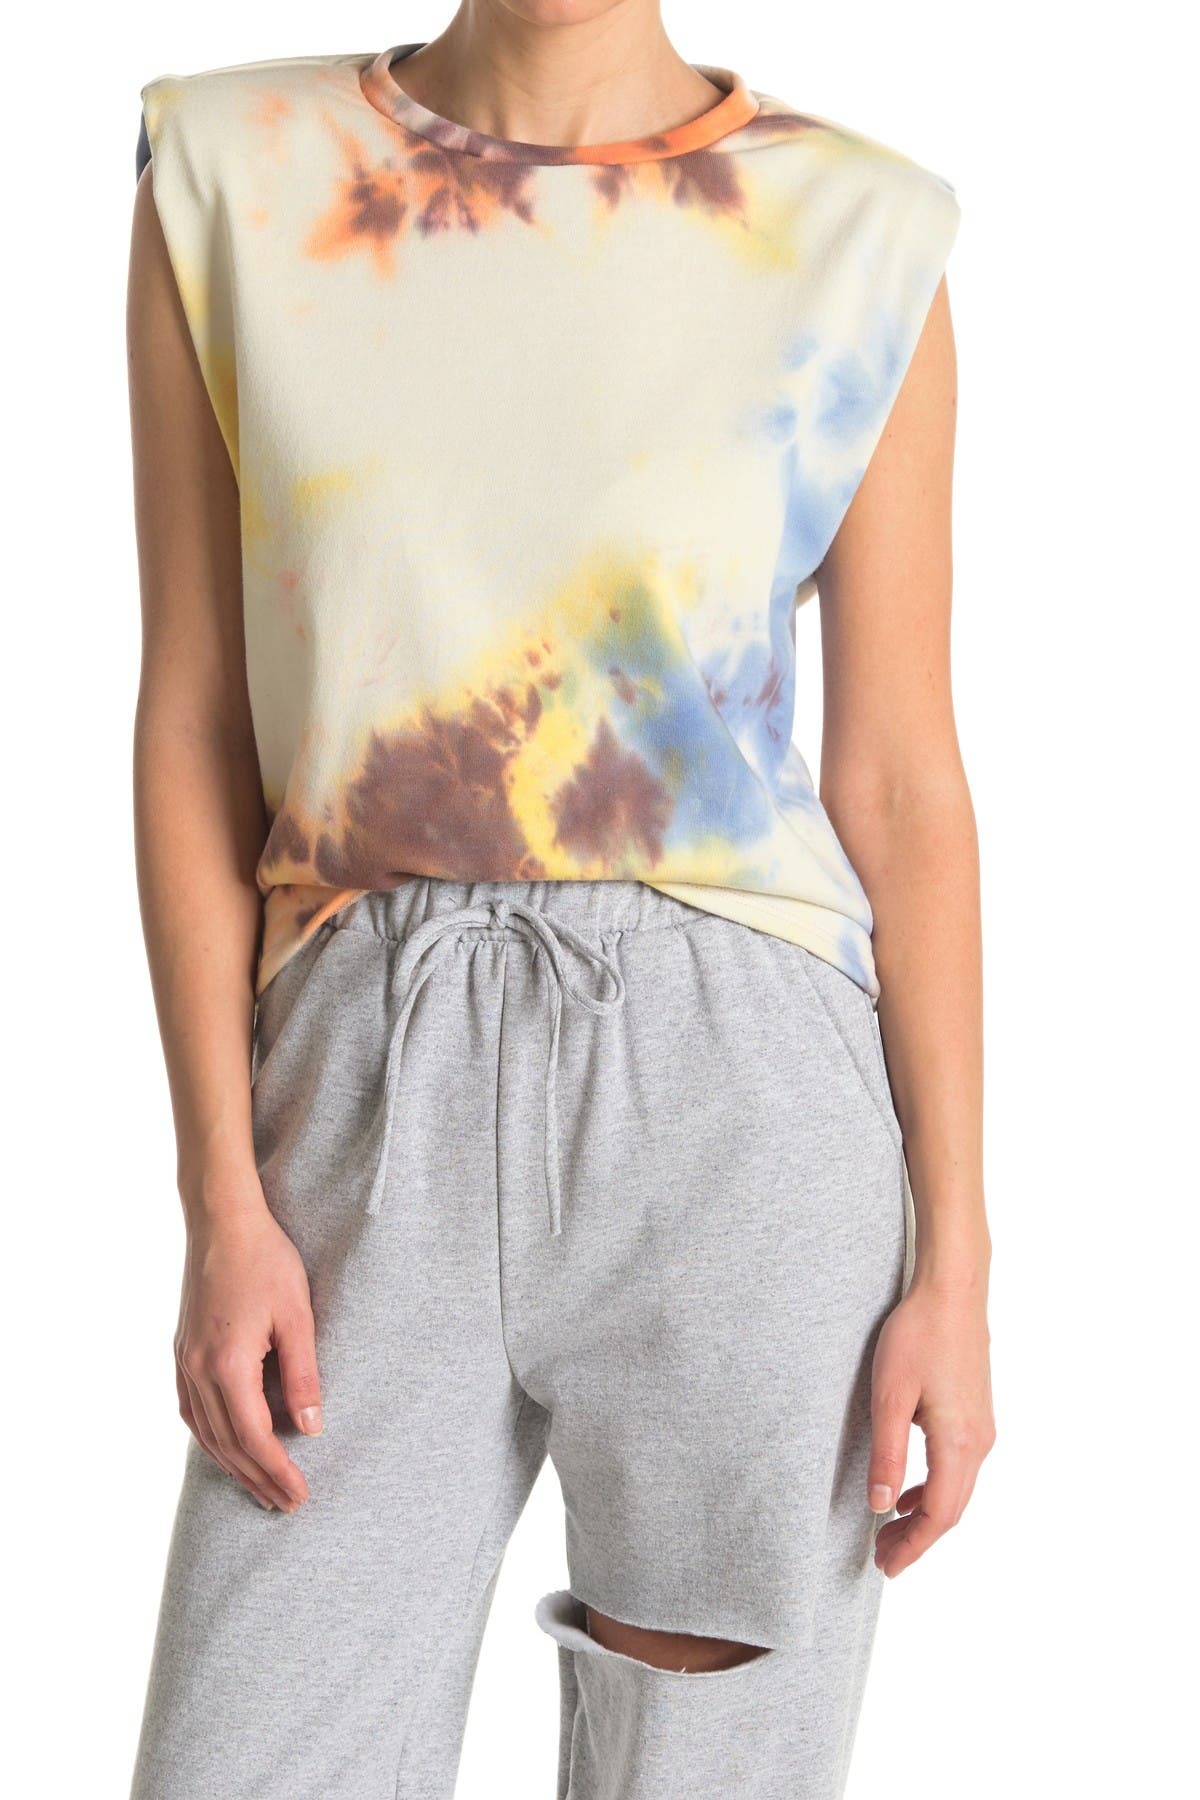 Image of Know One Cares Tie Dye French Terry Shoulder Padded Muscle Tank